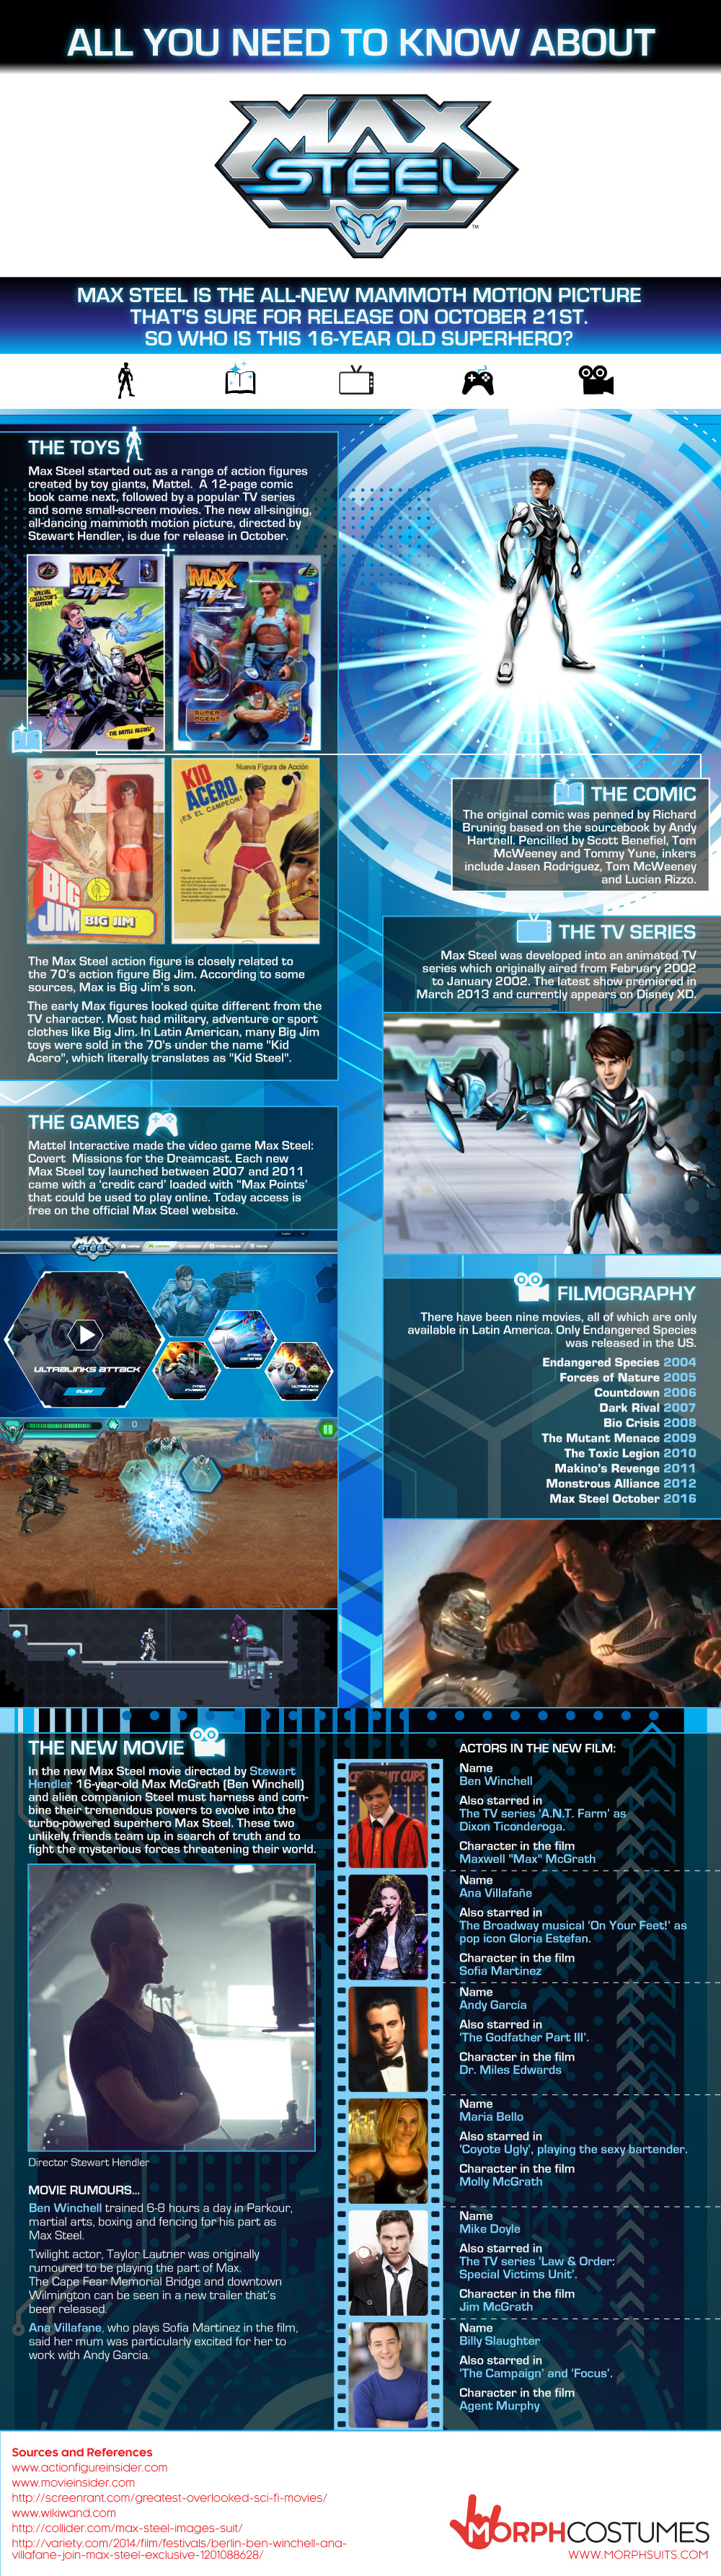 Everything You Need To Know About Max Steel (Infographic)